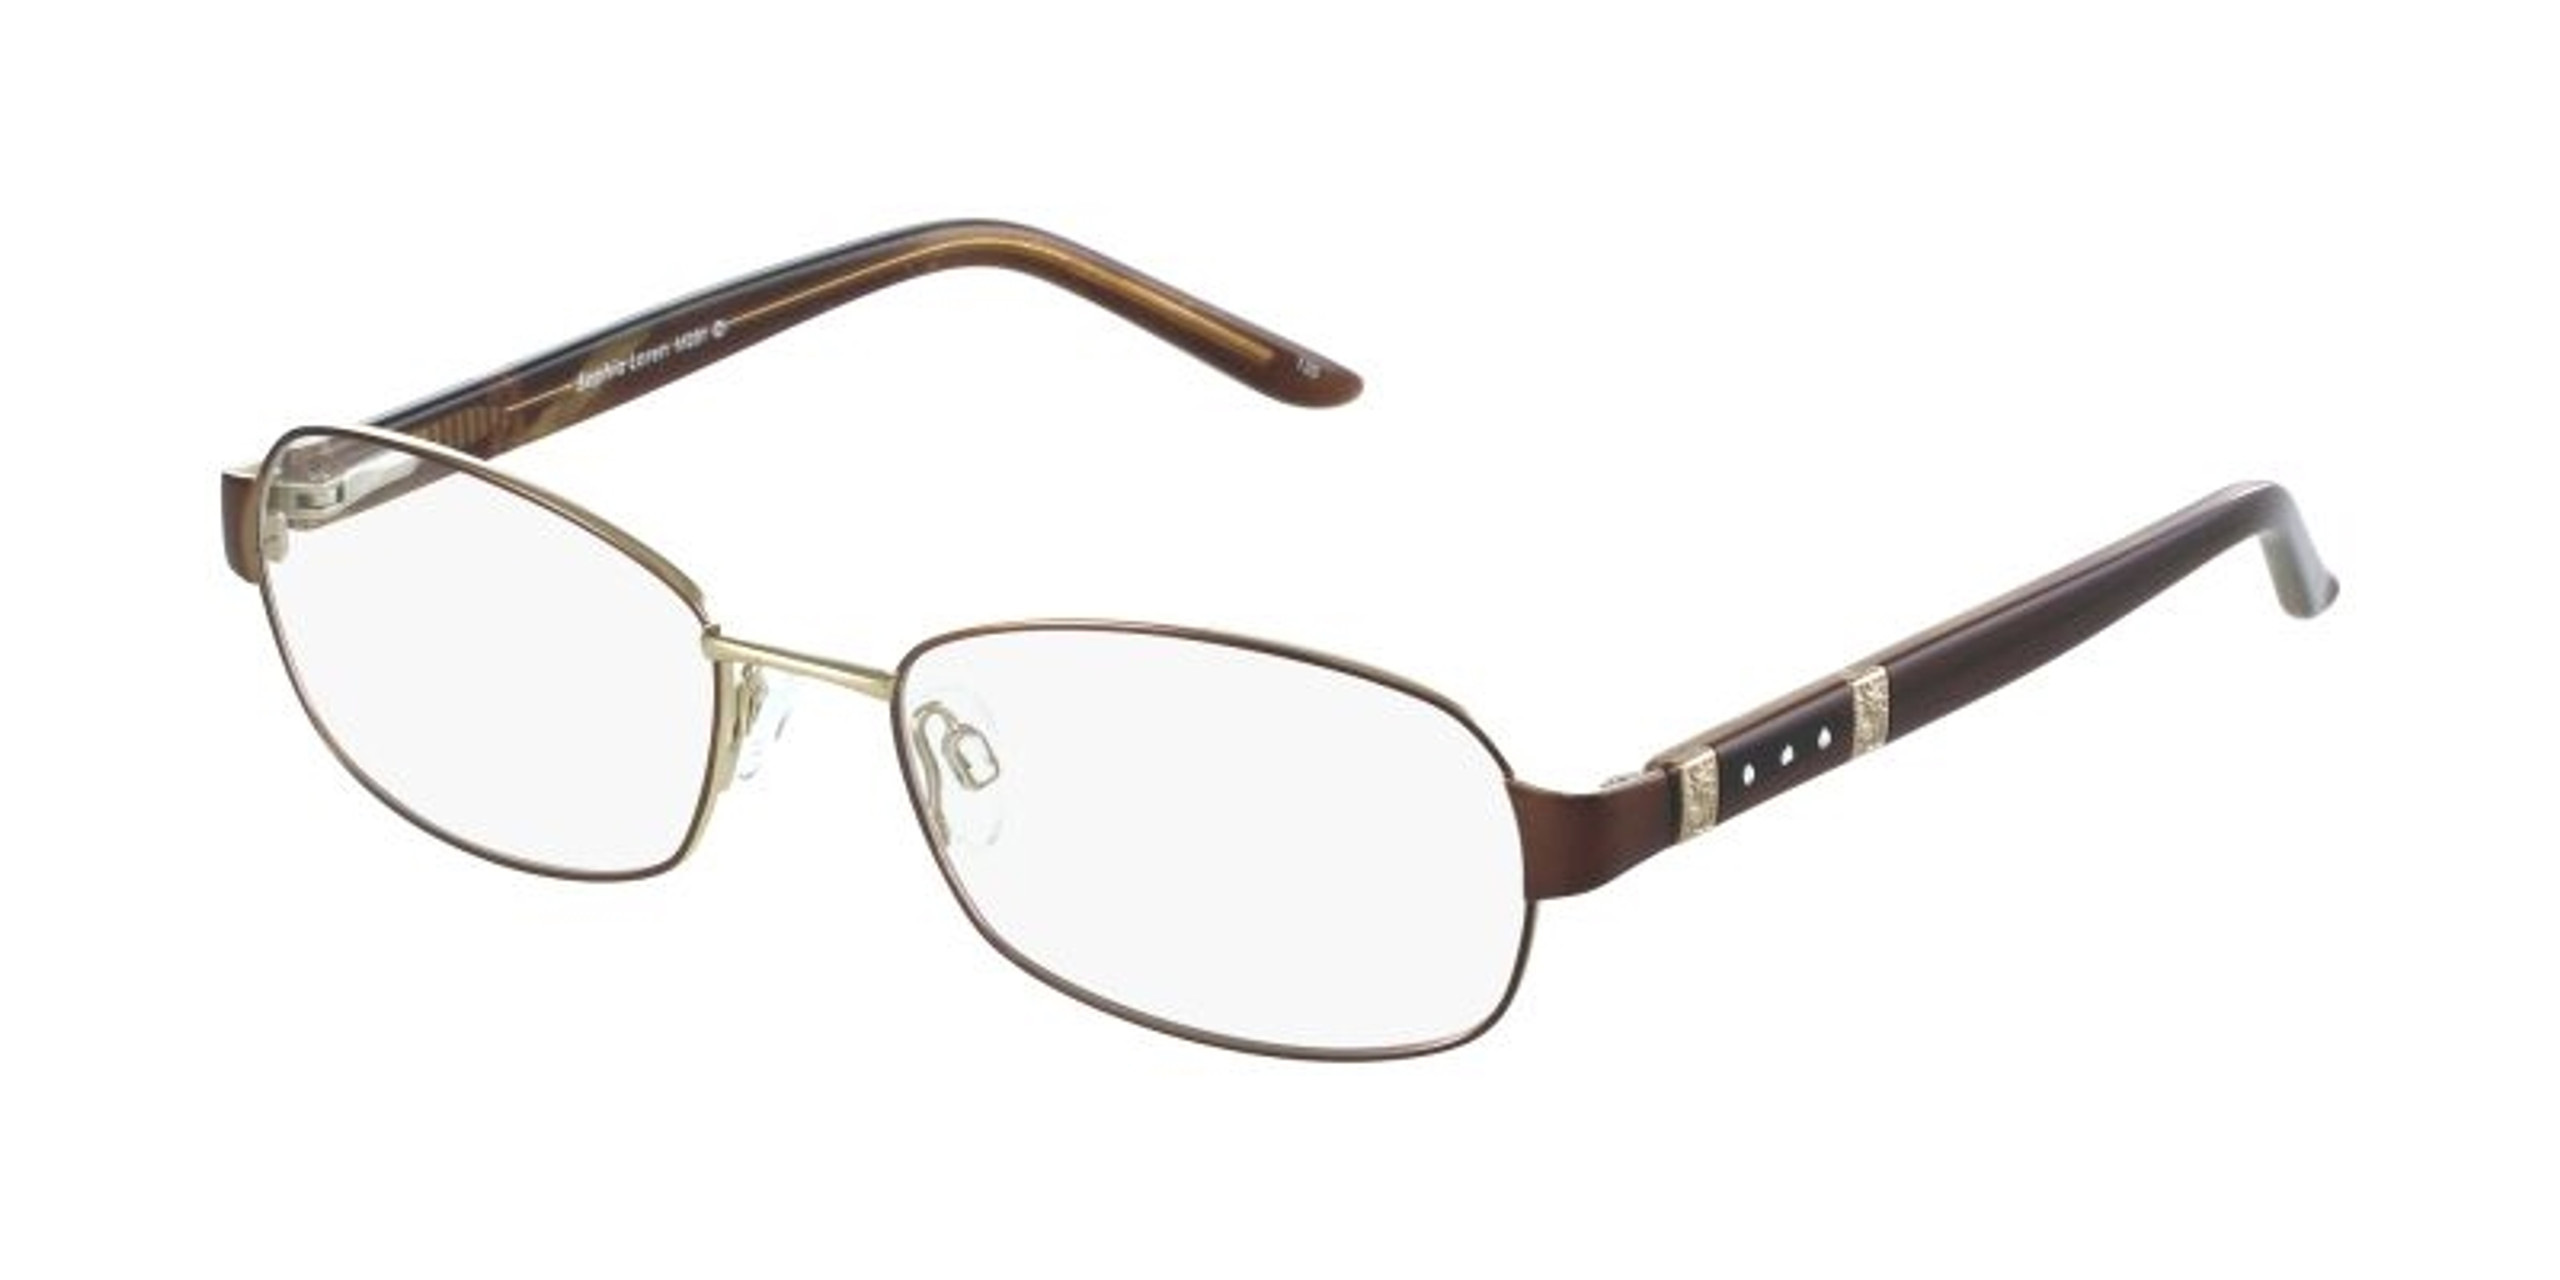 Narrow oval framed women's glasses in brown and gold color